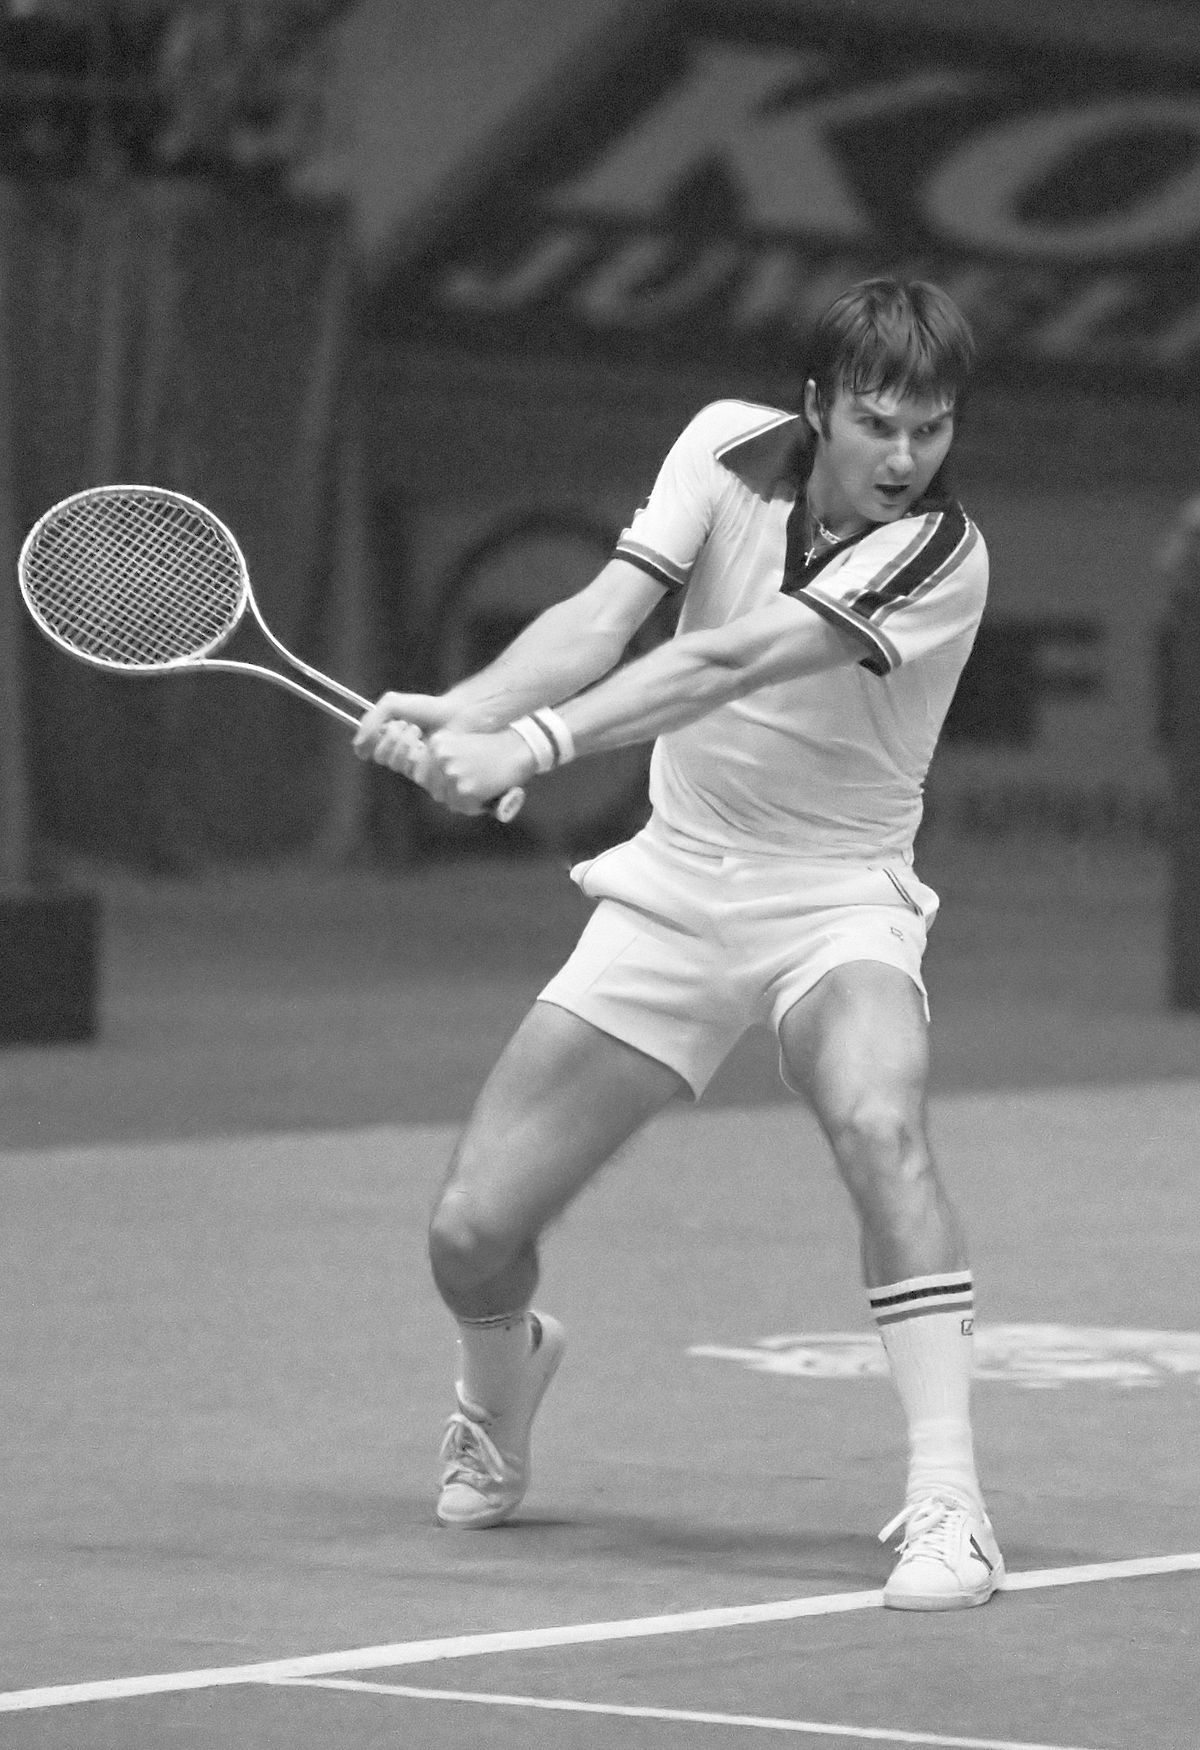 Jimmy connors wikipedia for Miglior manuale fotografia